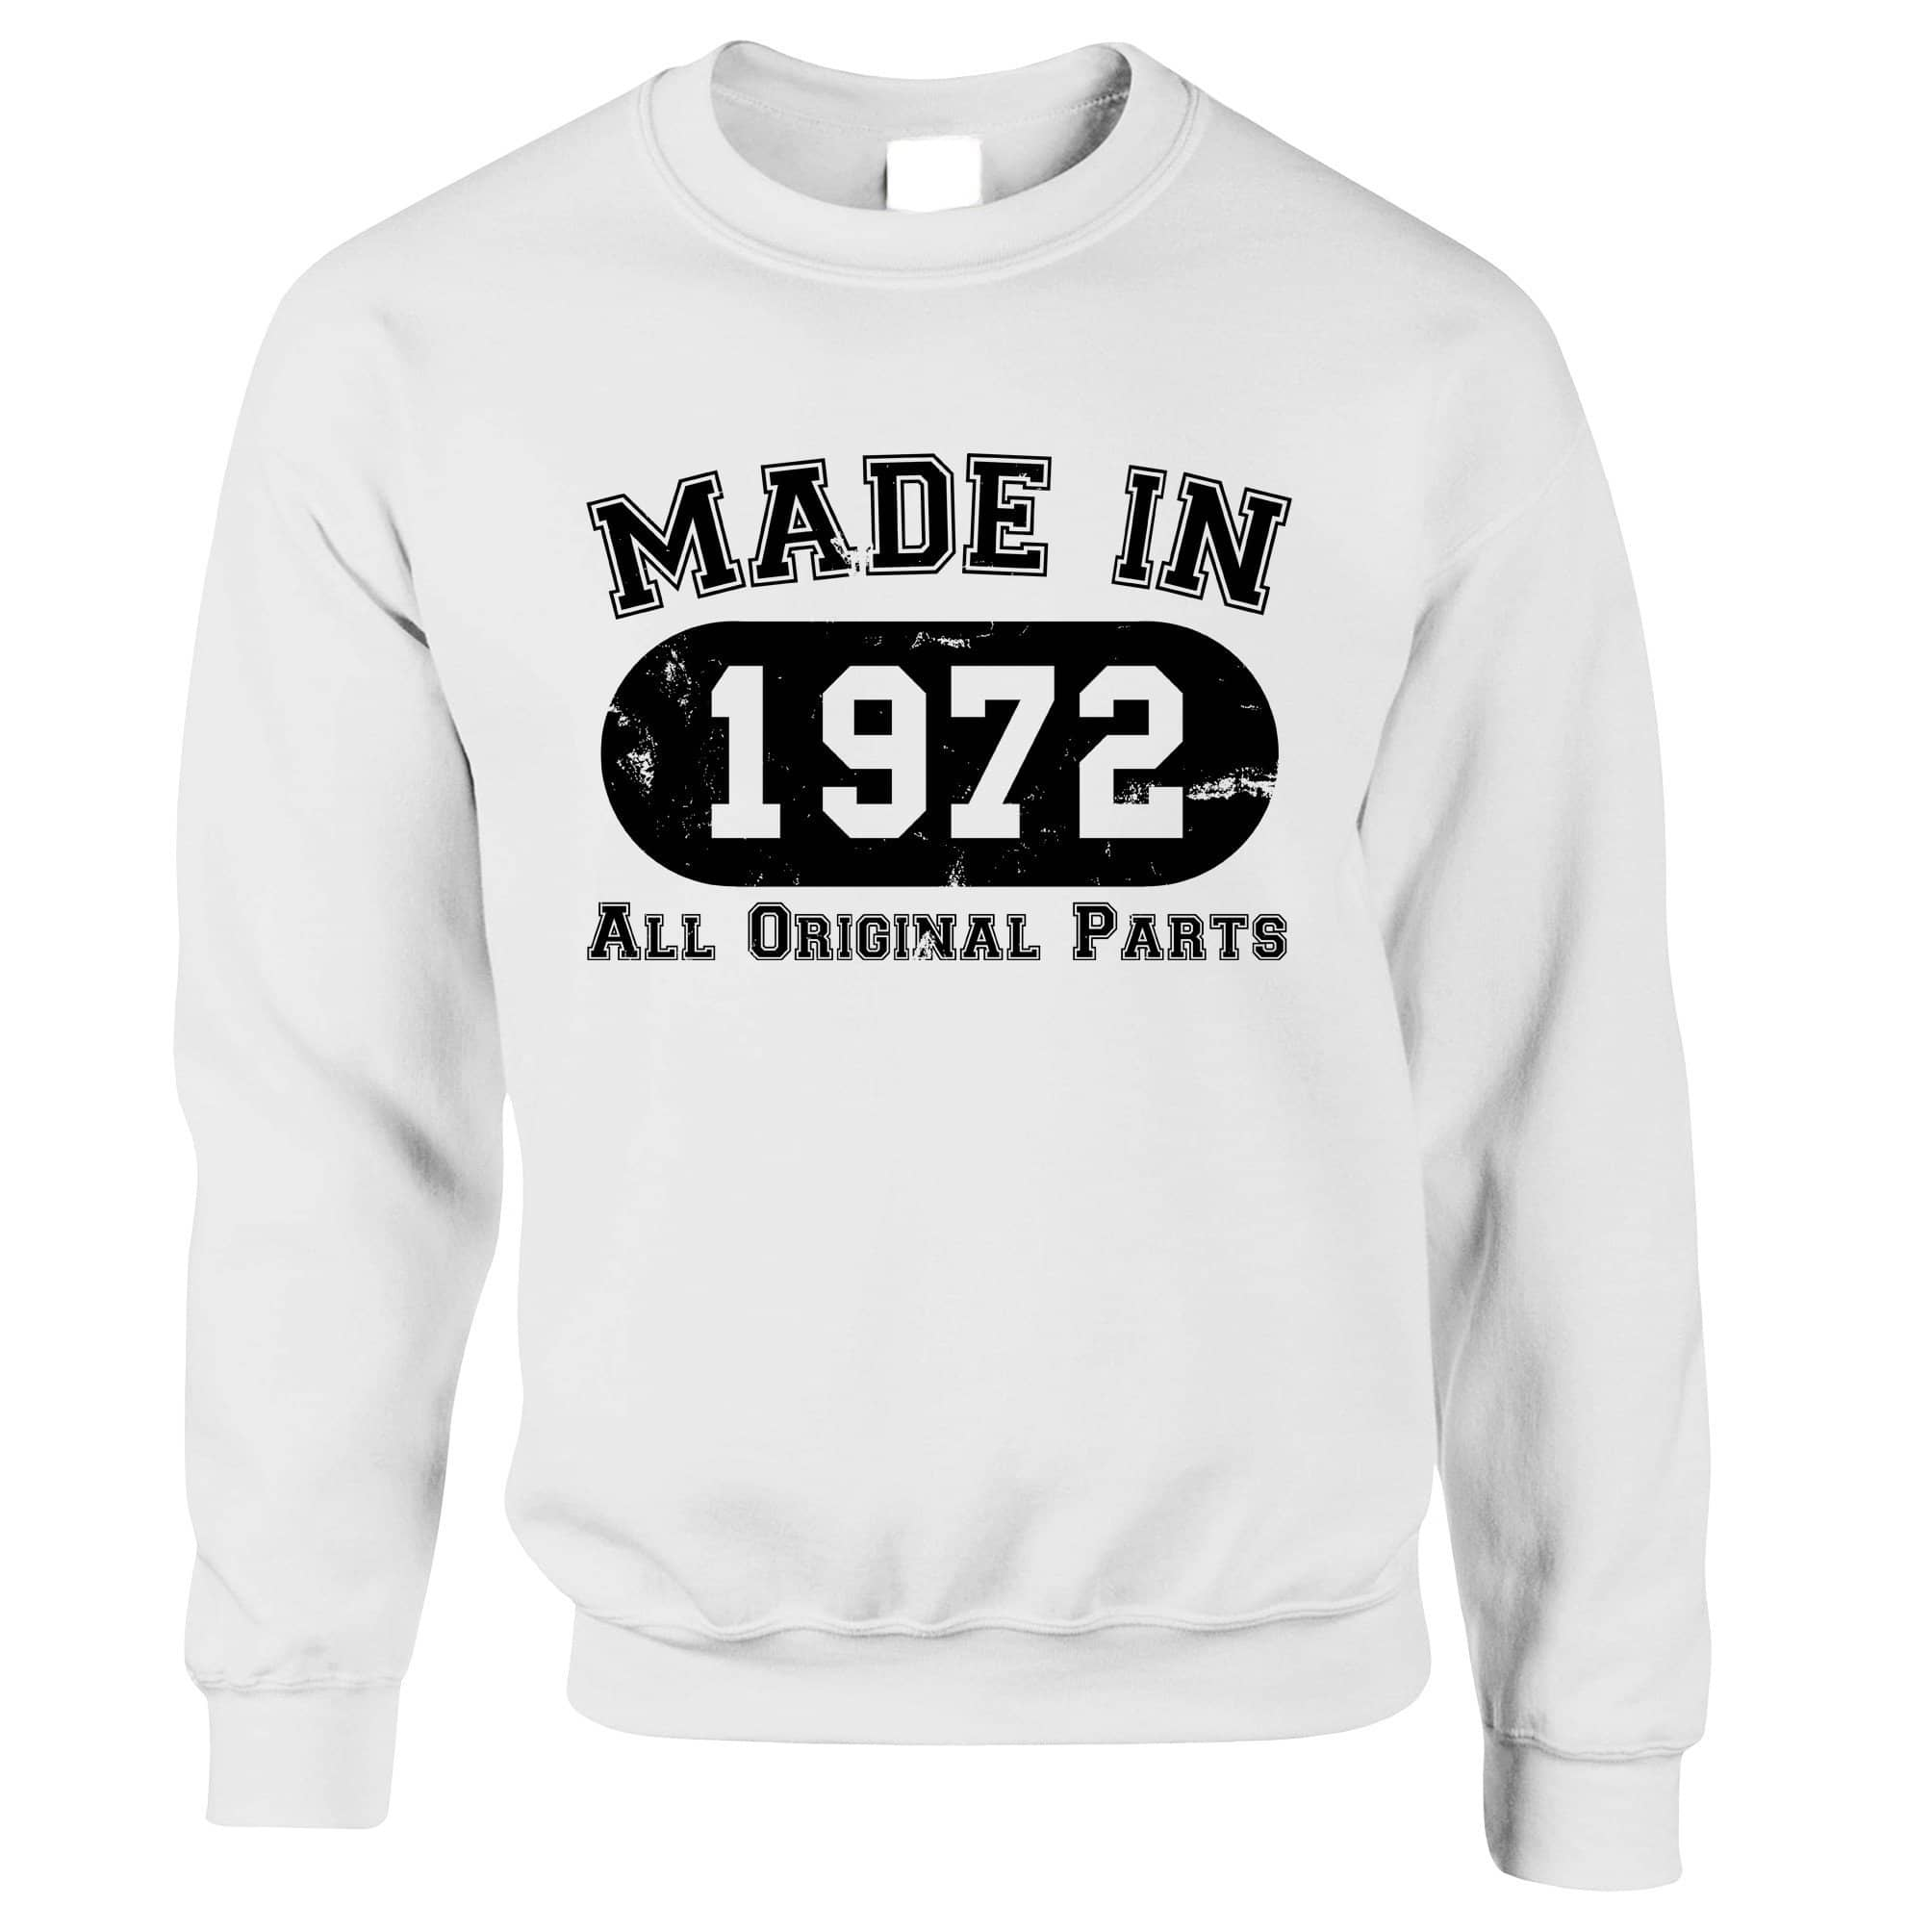 Made in 1972 All Original Parts Sweatshirt Jumper [Distressed]